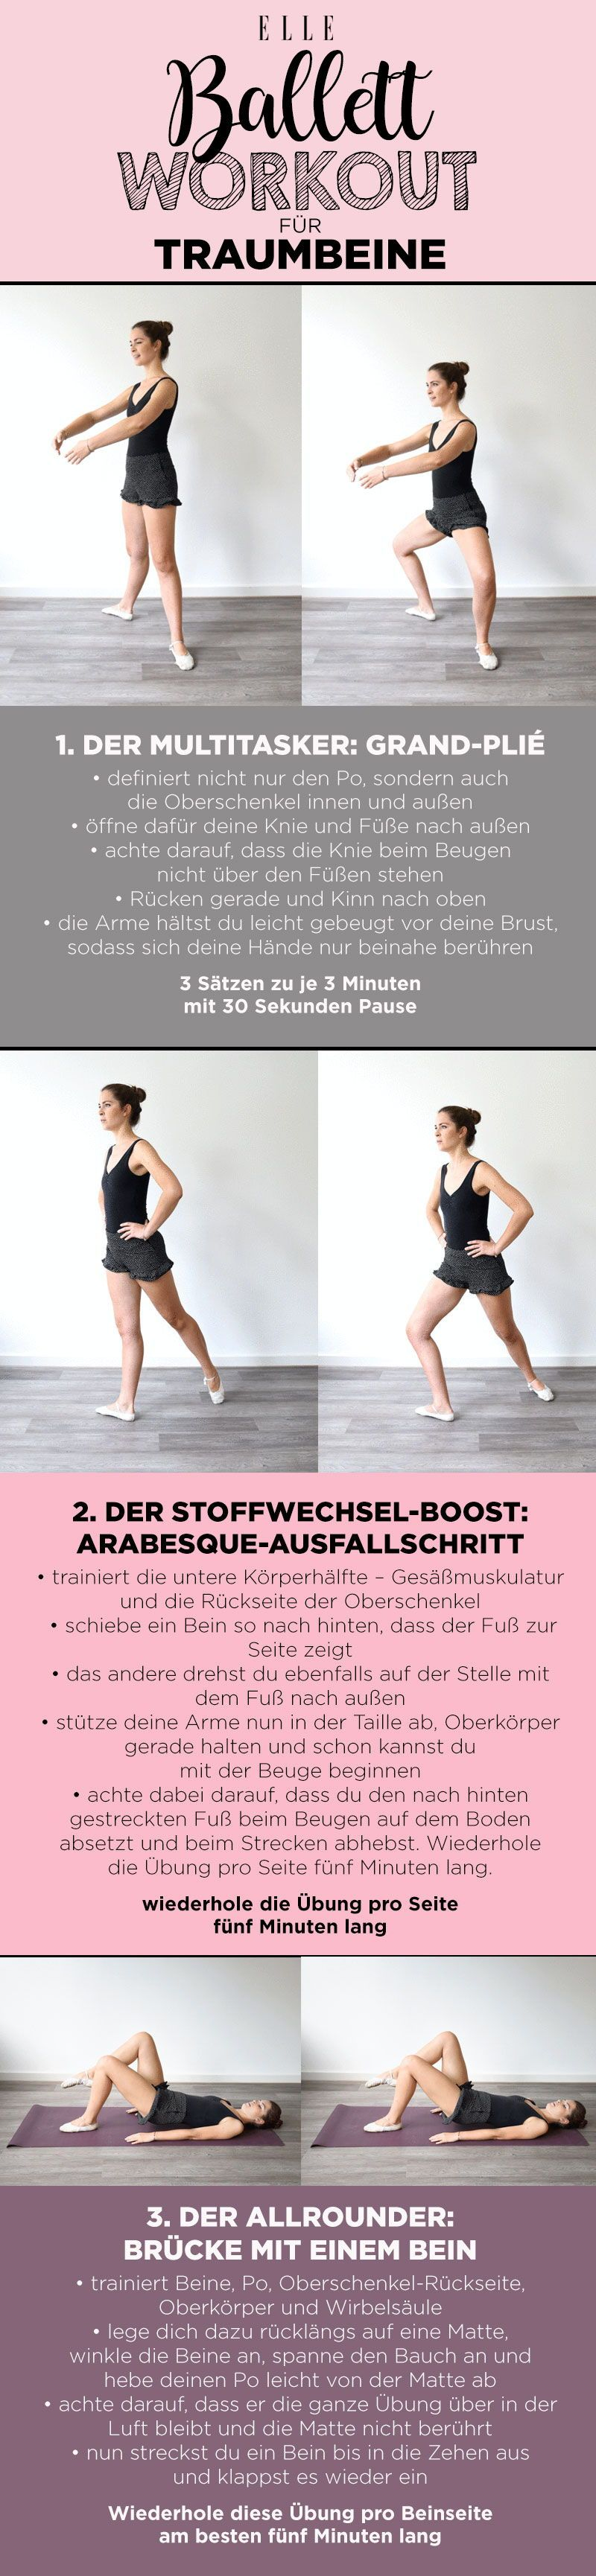 Ballett-Workout definierte Beine: 3 Profi-Übungen #balletfitness